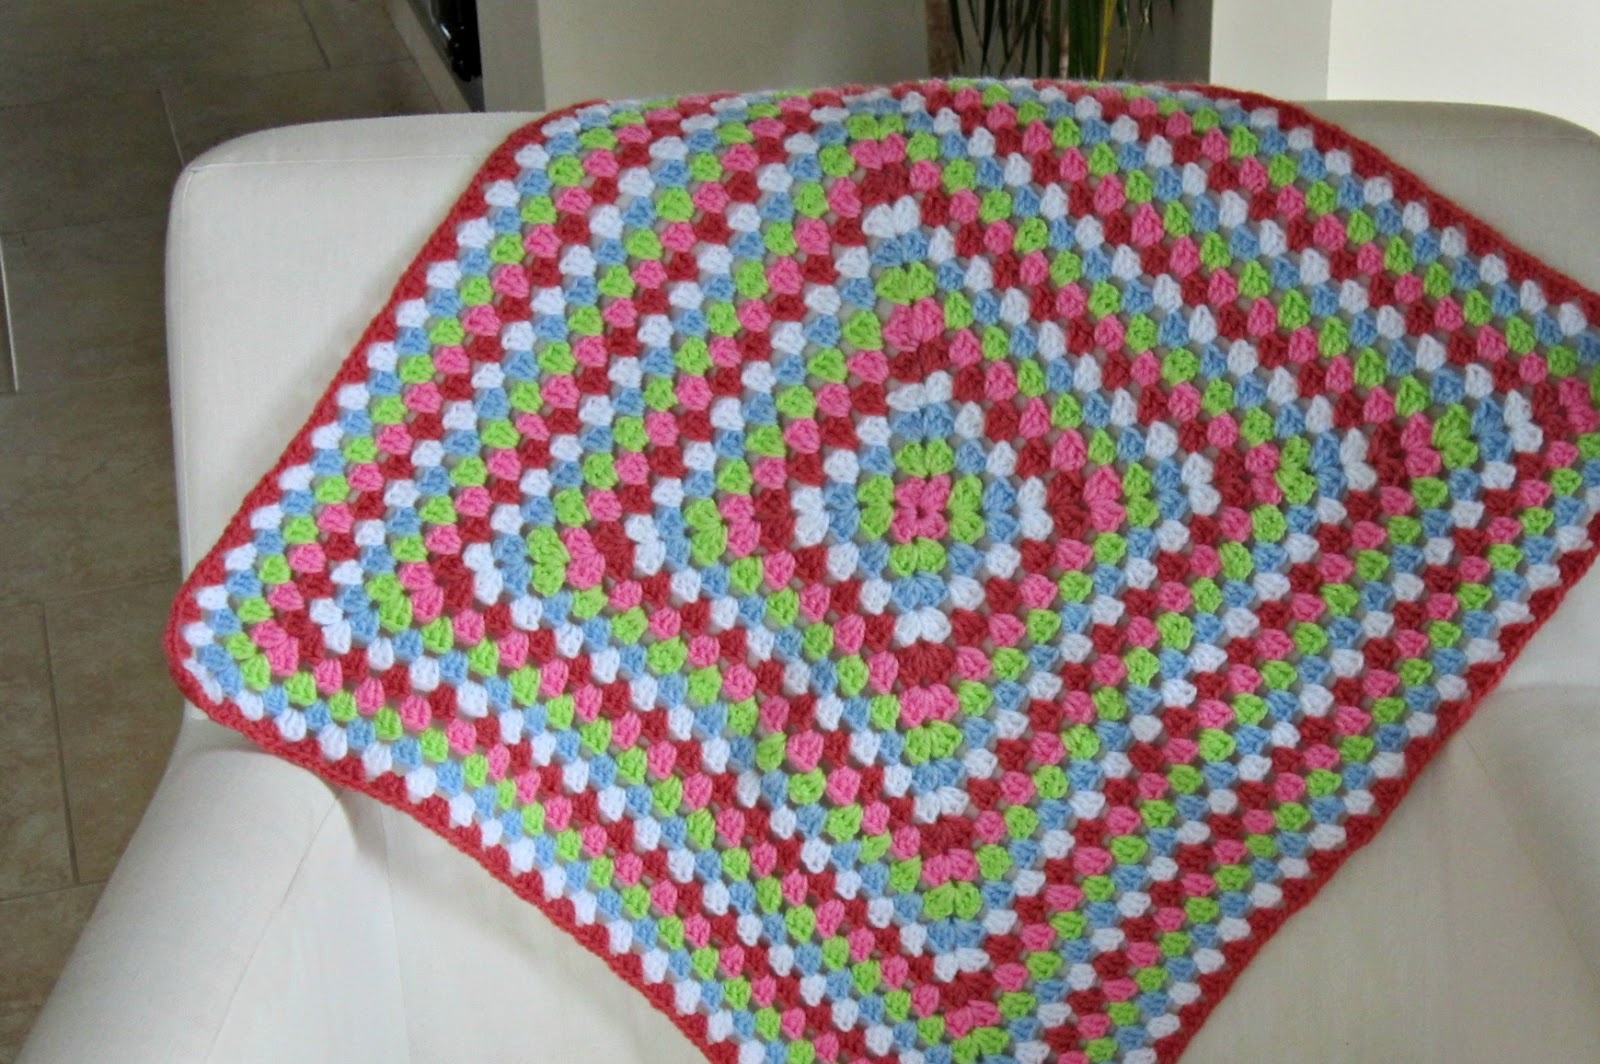 How To Crochet A Granny Square Blanket Pattern : Beautiful Granny Square Inspiration Beautiful Crochet Stuff